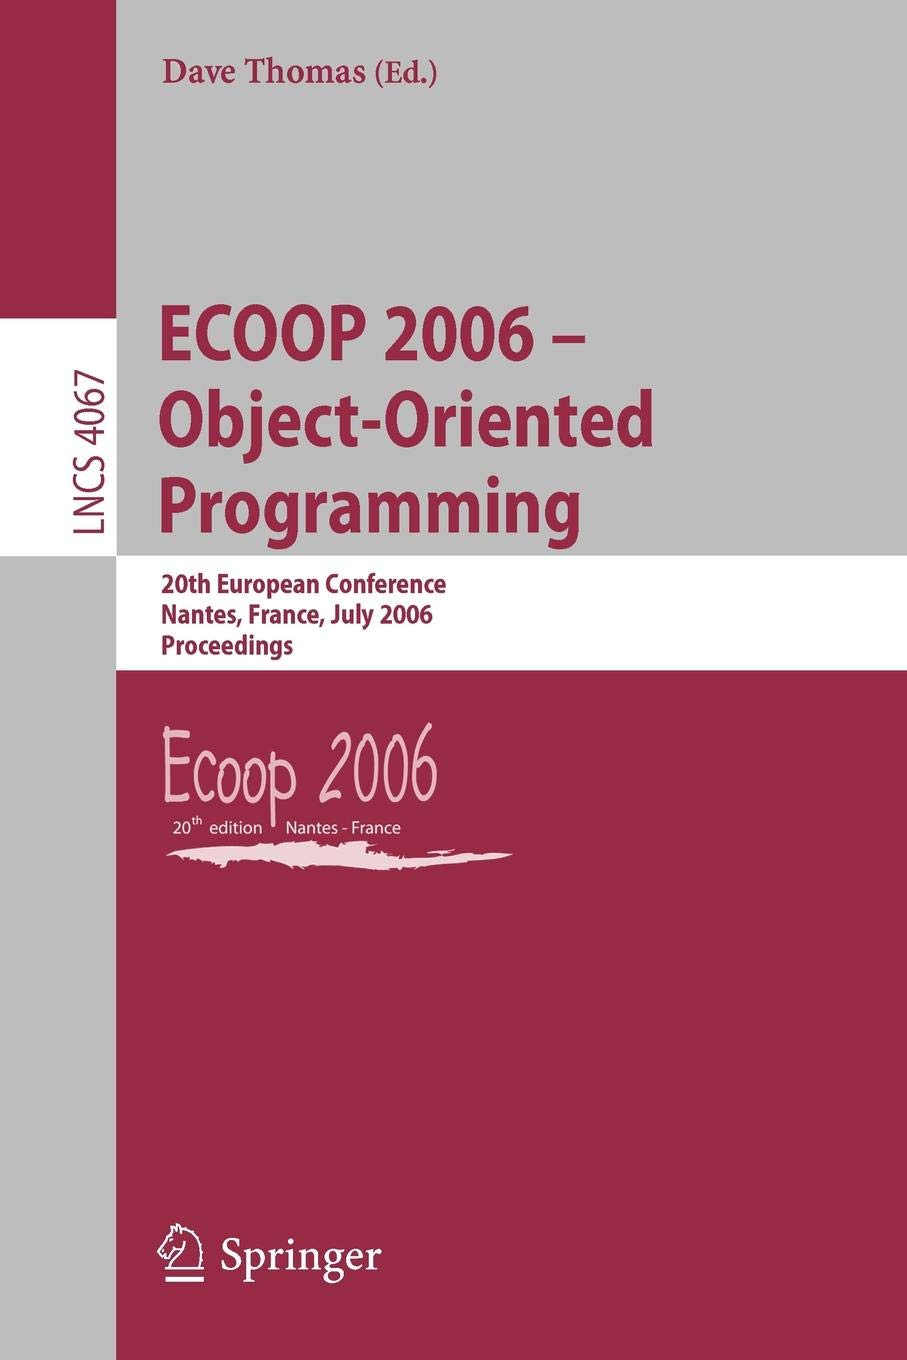 ECOOP 2006 - Object-Oriented Programming: 20th European Conference, Nantes, France, July 2006 Proceedings (Lecture Notes in Computer Science (4067))